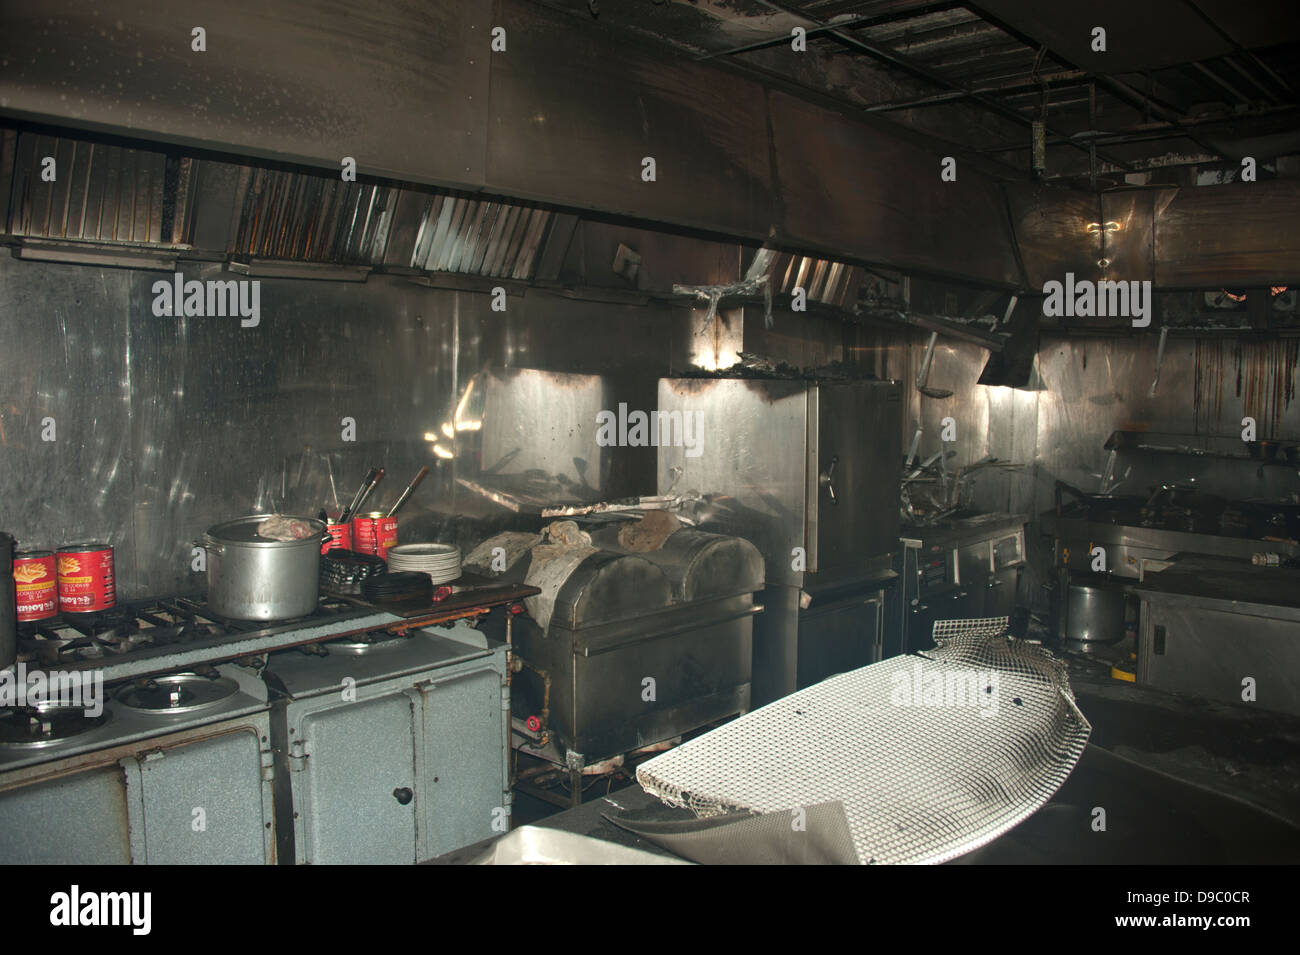 Commercial Chinese Restaurant Kitchen Fire Severe Stock